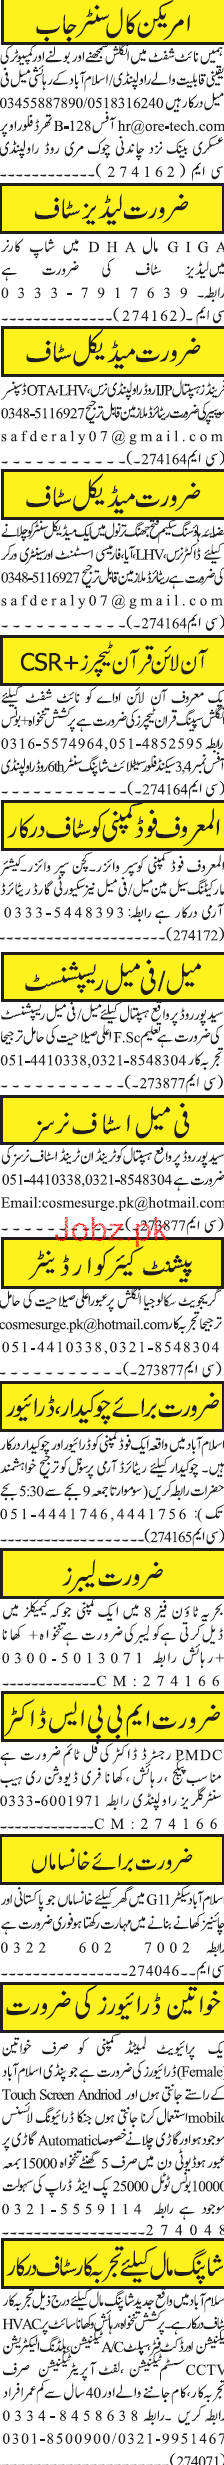 Lady Health Visitors LHV, Pharmacy Assistants Wanted